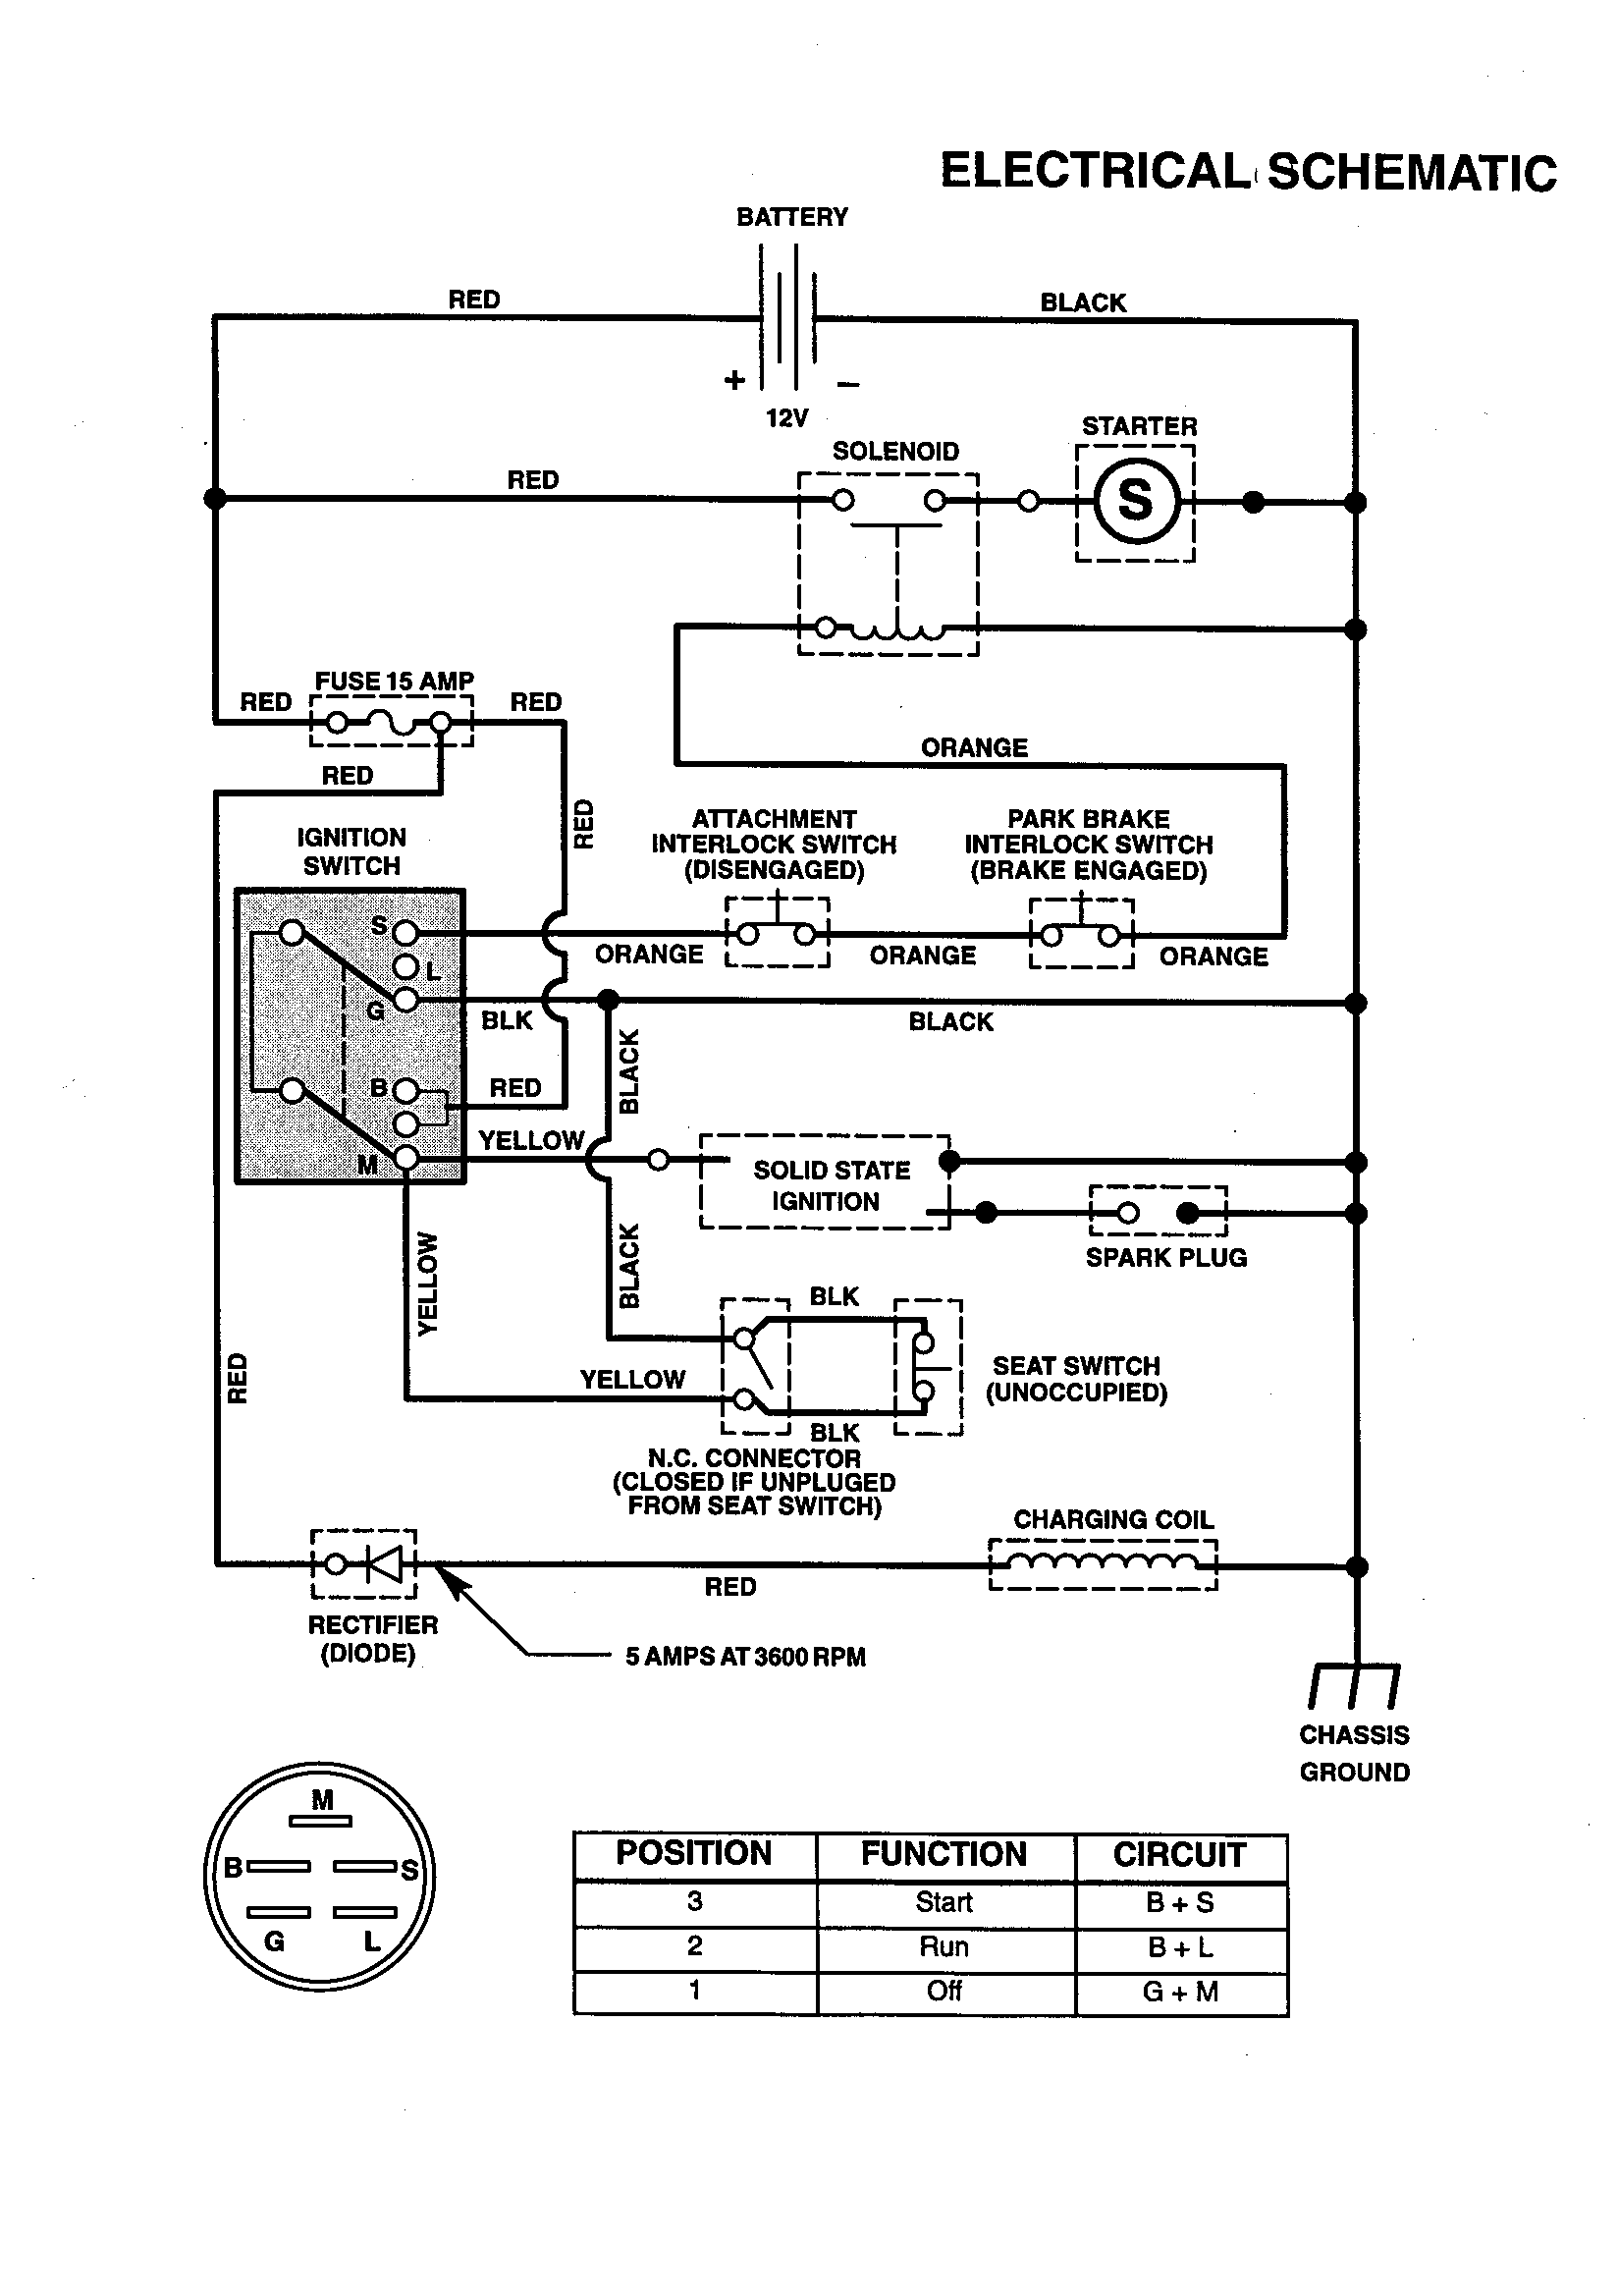 hight resolution of 917 271021 craftsman lawn mower wire diagram simple wiring schema diagram for networking wiring diagram craftsman